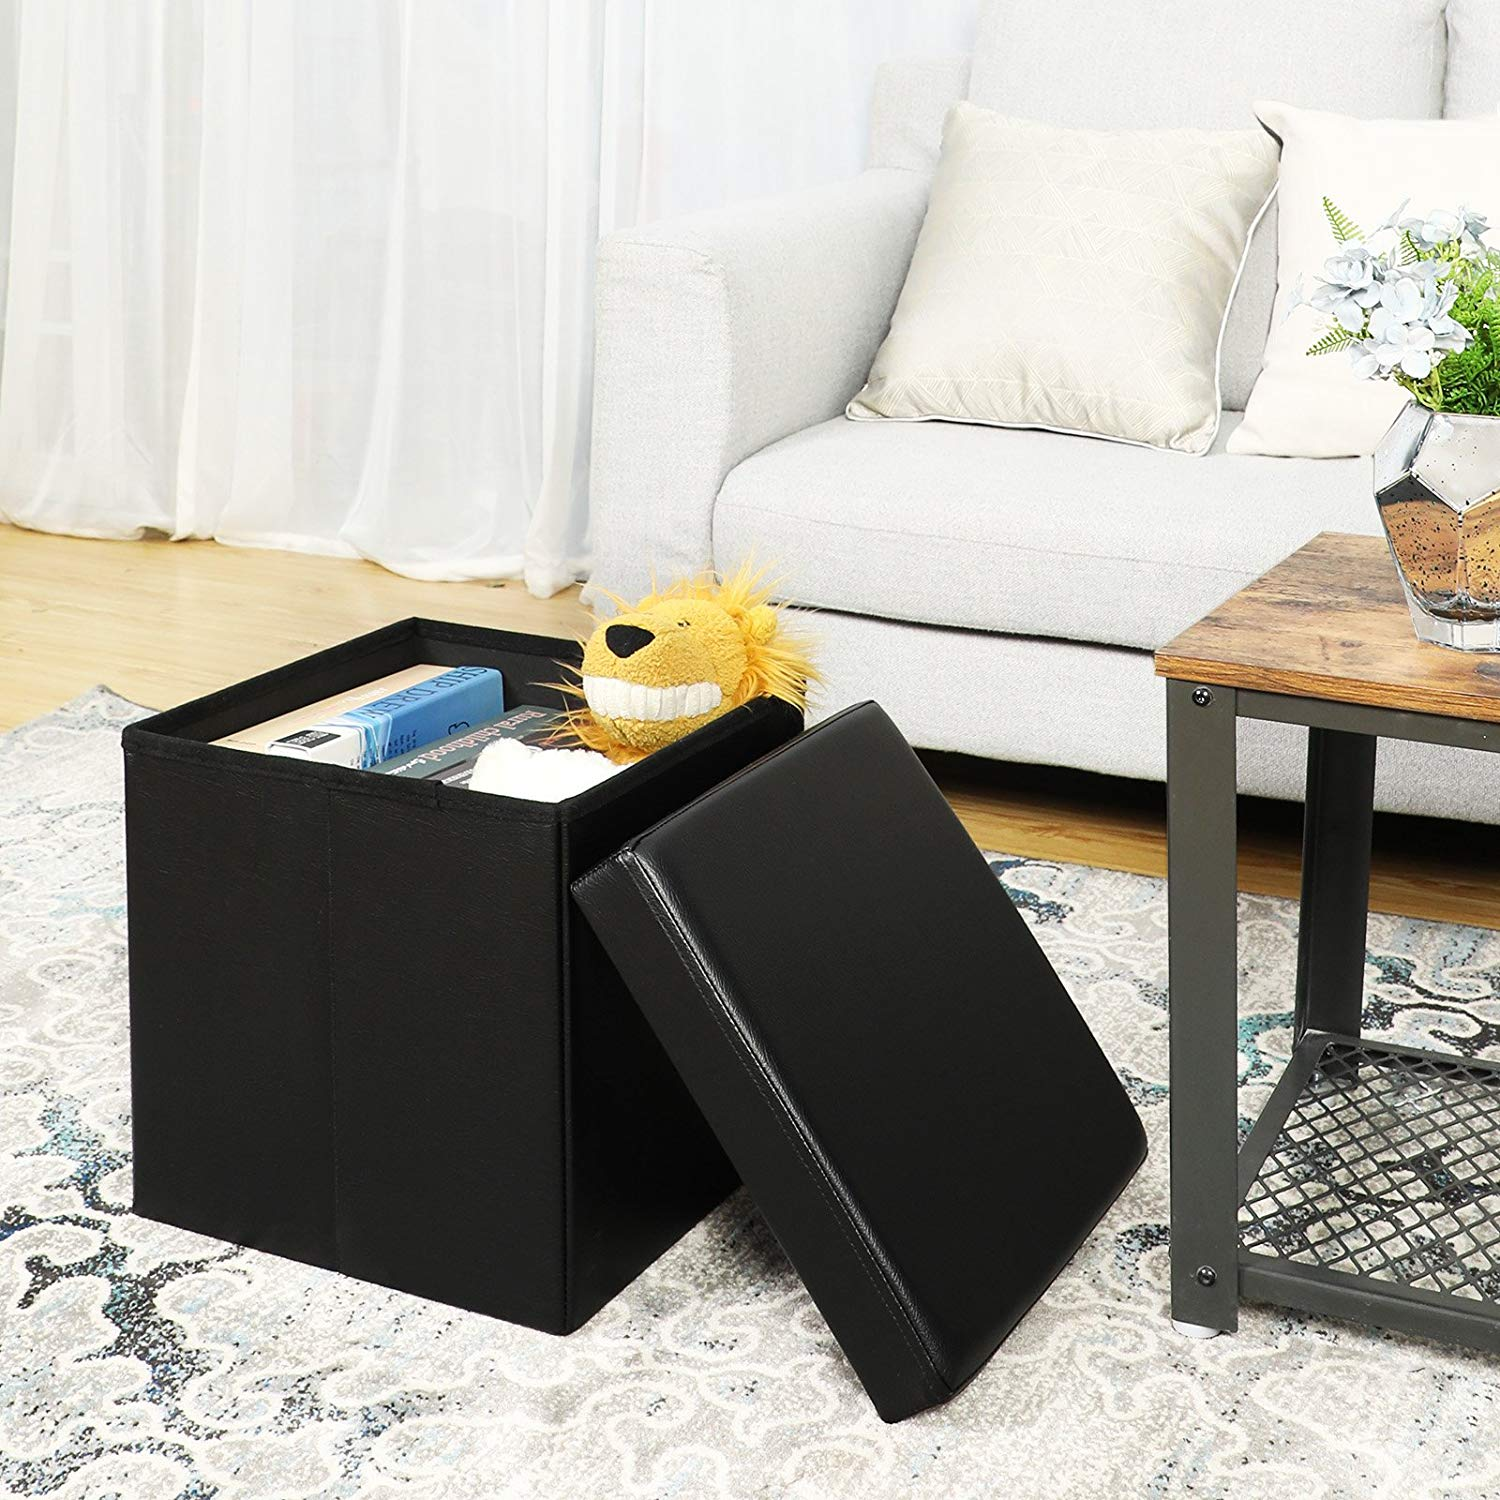 Admirable Details About Storage Ottoman Small Cube Footrest Stool Seat Faux Leather Toy Chest Black Onthecornerstone Fun Painted Chair Ideas Images Onthecornerstoneorg